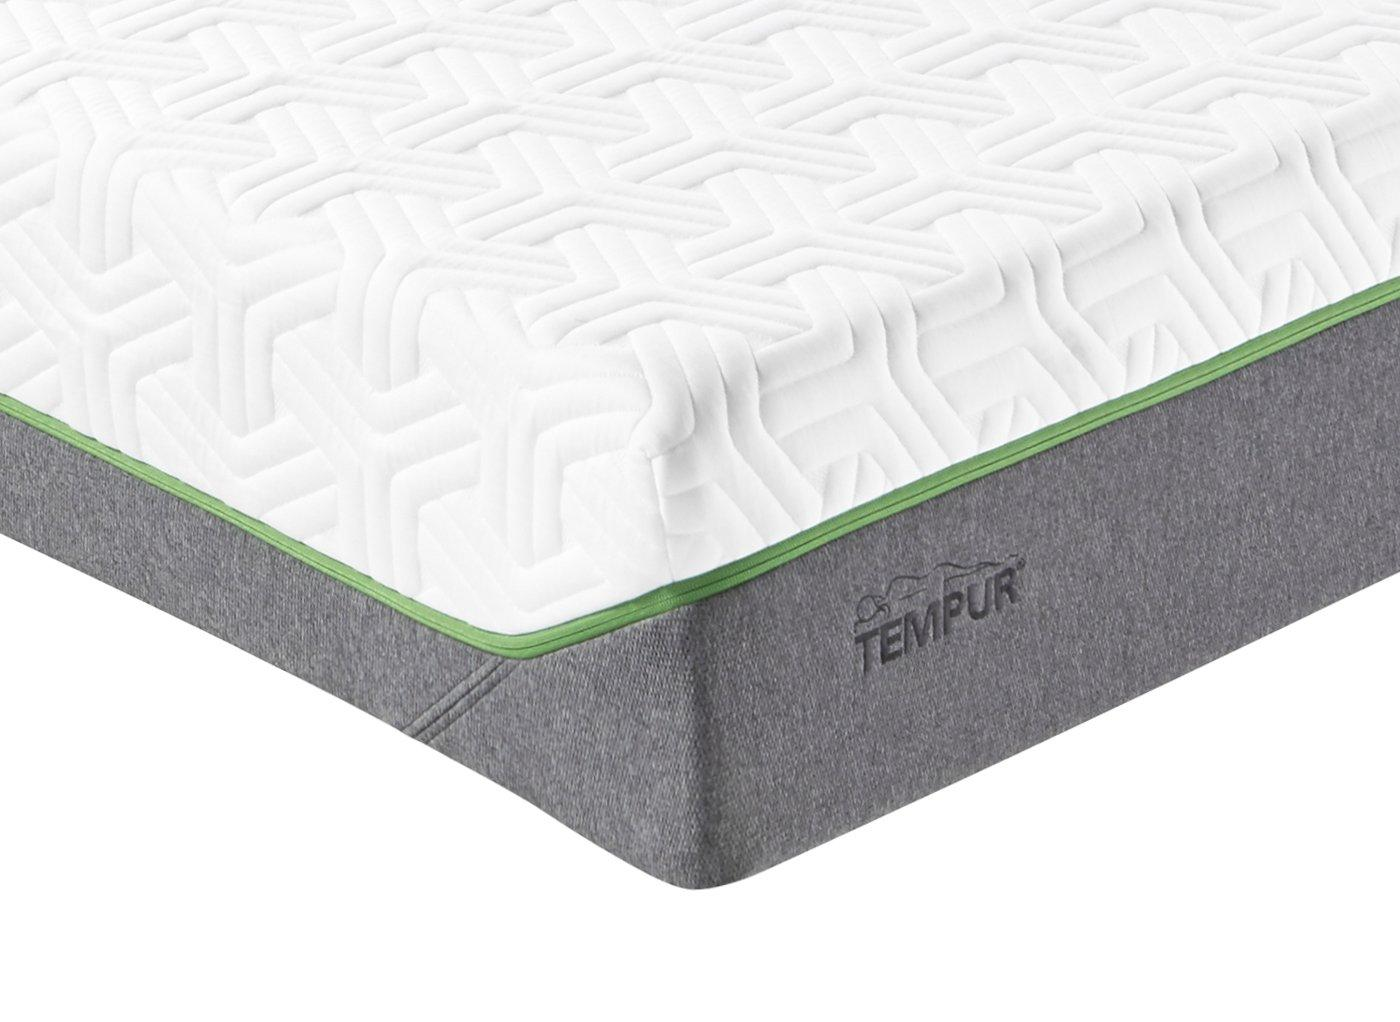 Tempur Cooltouch Hybrid Elite Mattress - Medium 6'0 Super king